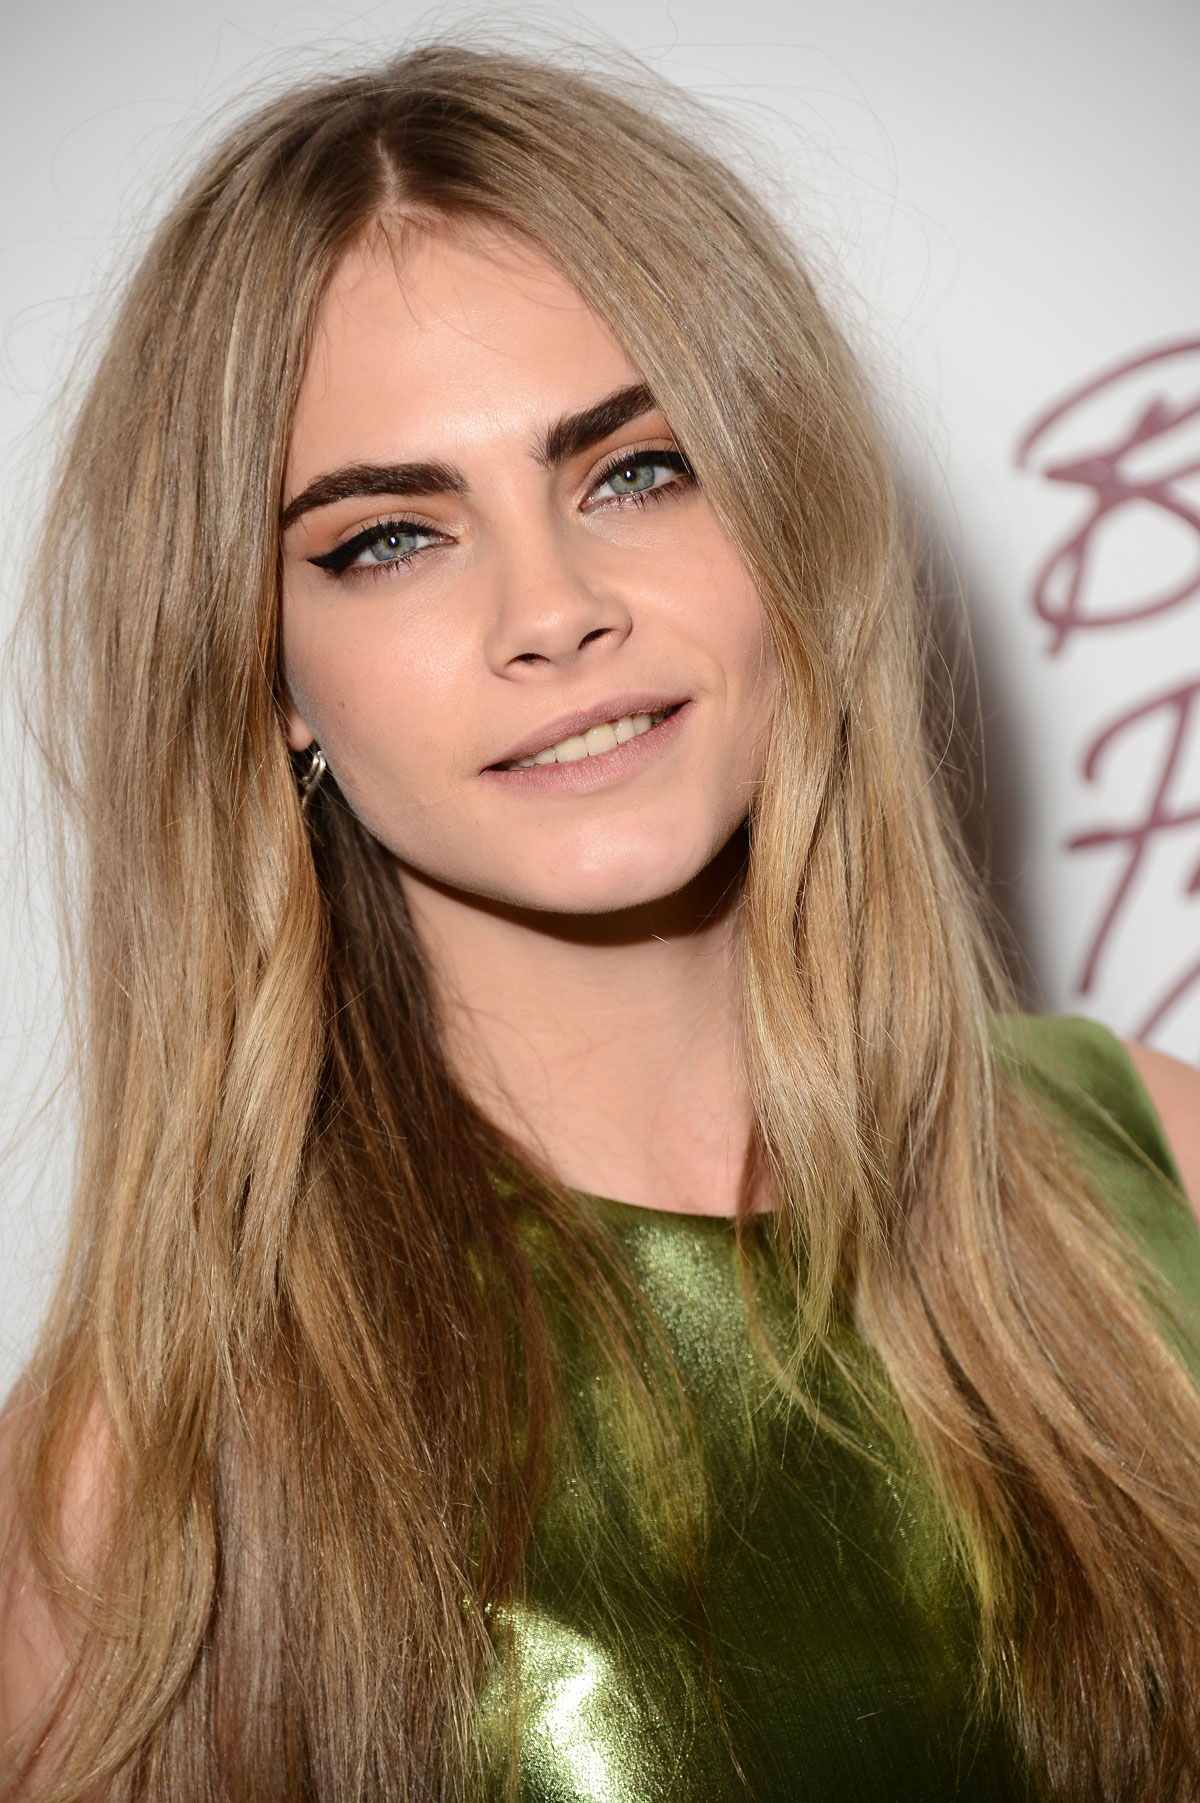 Cara Delevingne Net Worth